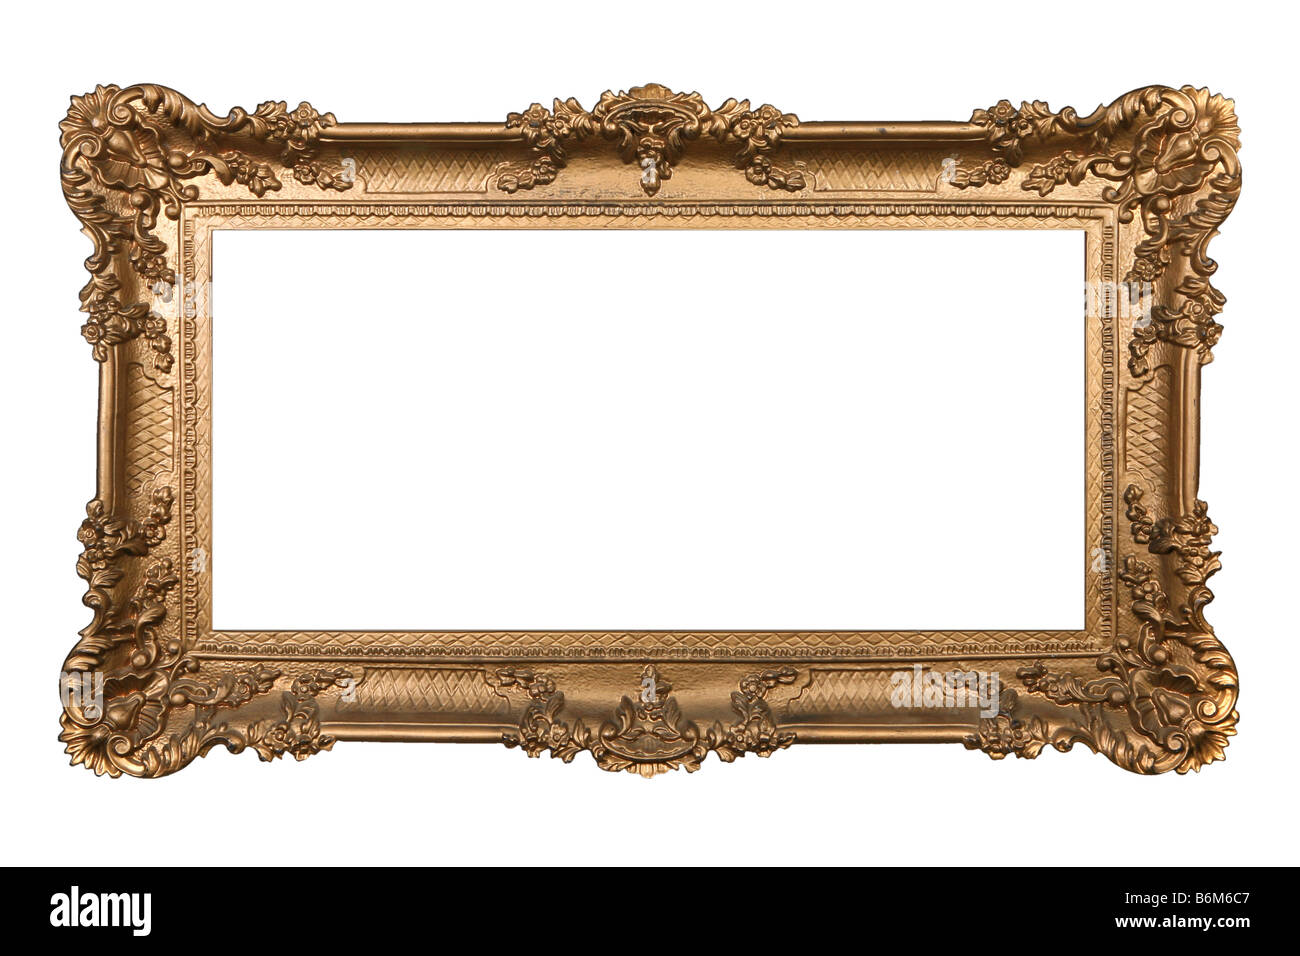 Elaborate Golden Picture Frame Isolated on White Easily Extracted - Stock Image